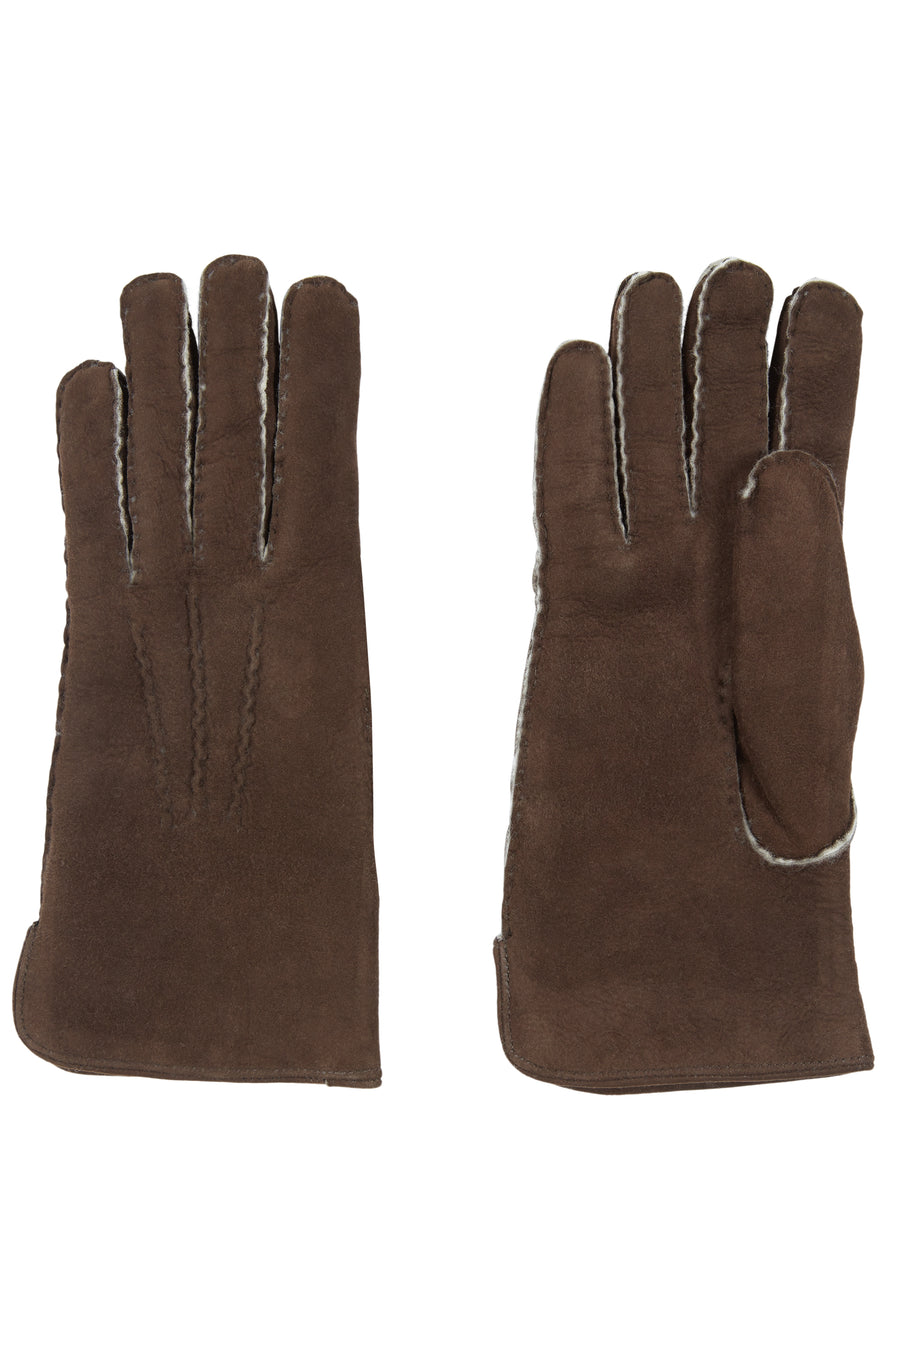 Mahogany Shearling Gloves